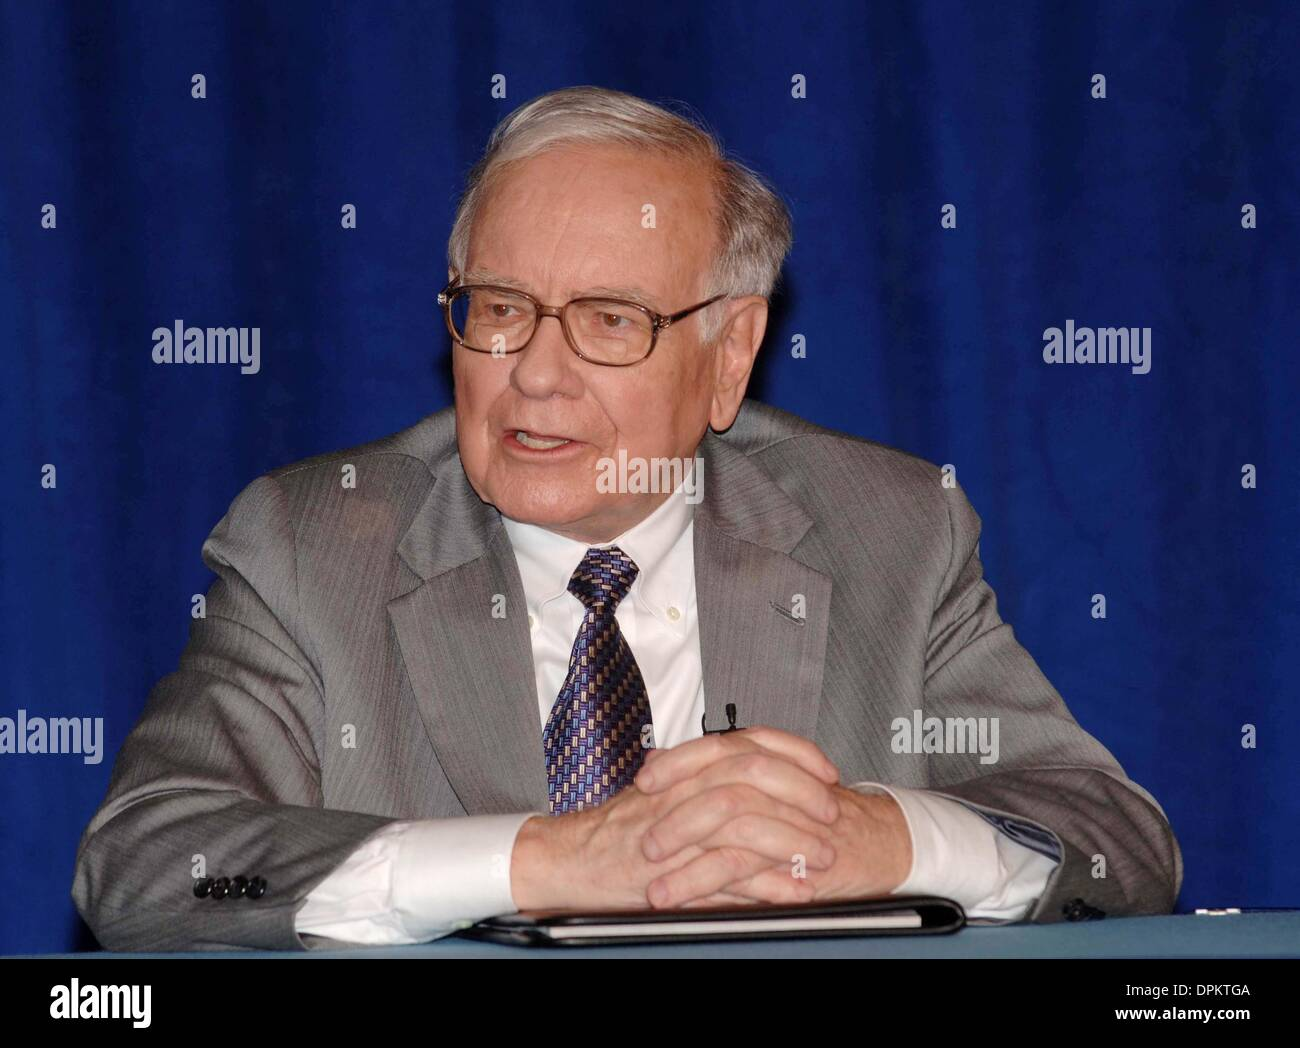 June 26, 2006 - New York, New York, USA - Warren Buffet has pledged 10 million   class B shares of Berkshire Hathaway Corp. to the Bill and Melinda Gates Foundation. (Valued at approx. 1B)  The press conference  took place at the Sheraton Hotel in Manhattan  on June 26, 2006..K48437AR. ANDREA RENAULT-   WARREN BUFFETT(Credit Image: © Globe Photos/ZUMAPRESS.com) - Stock Image